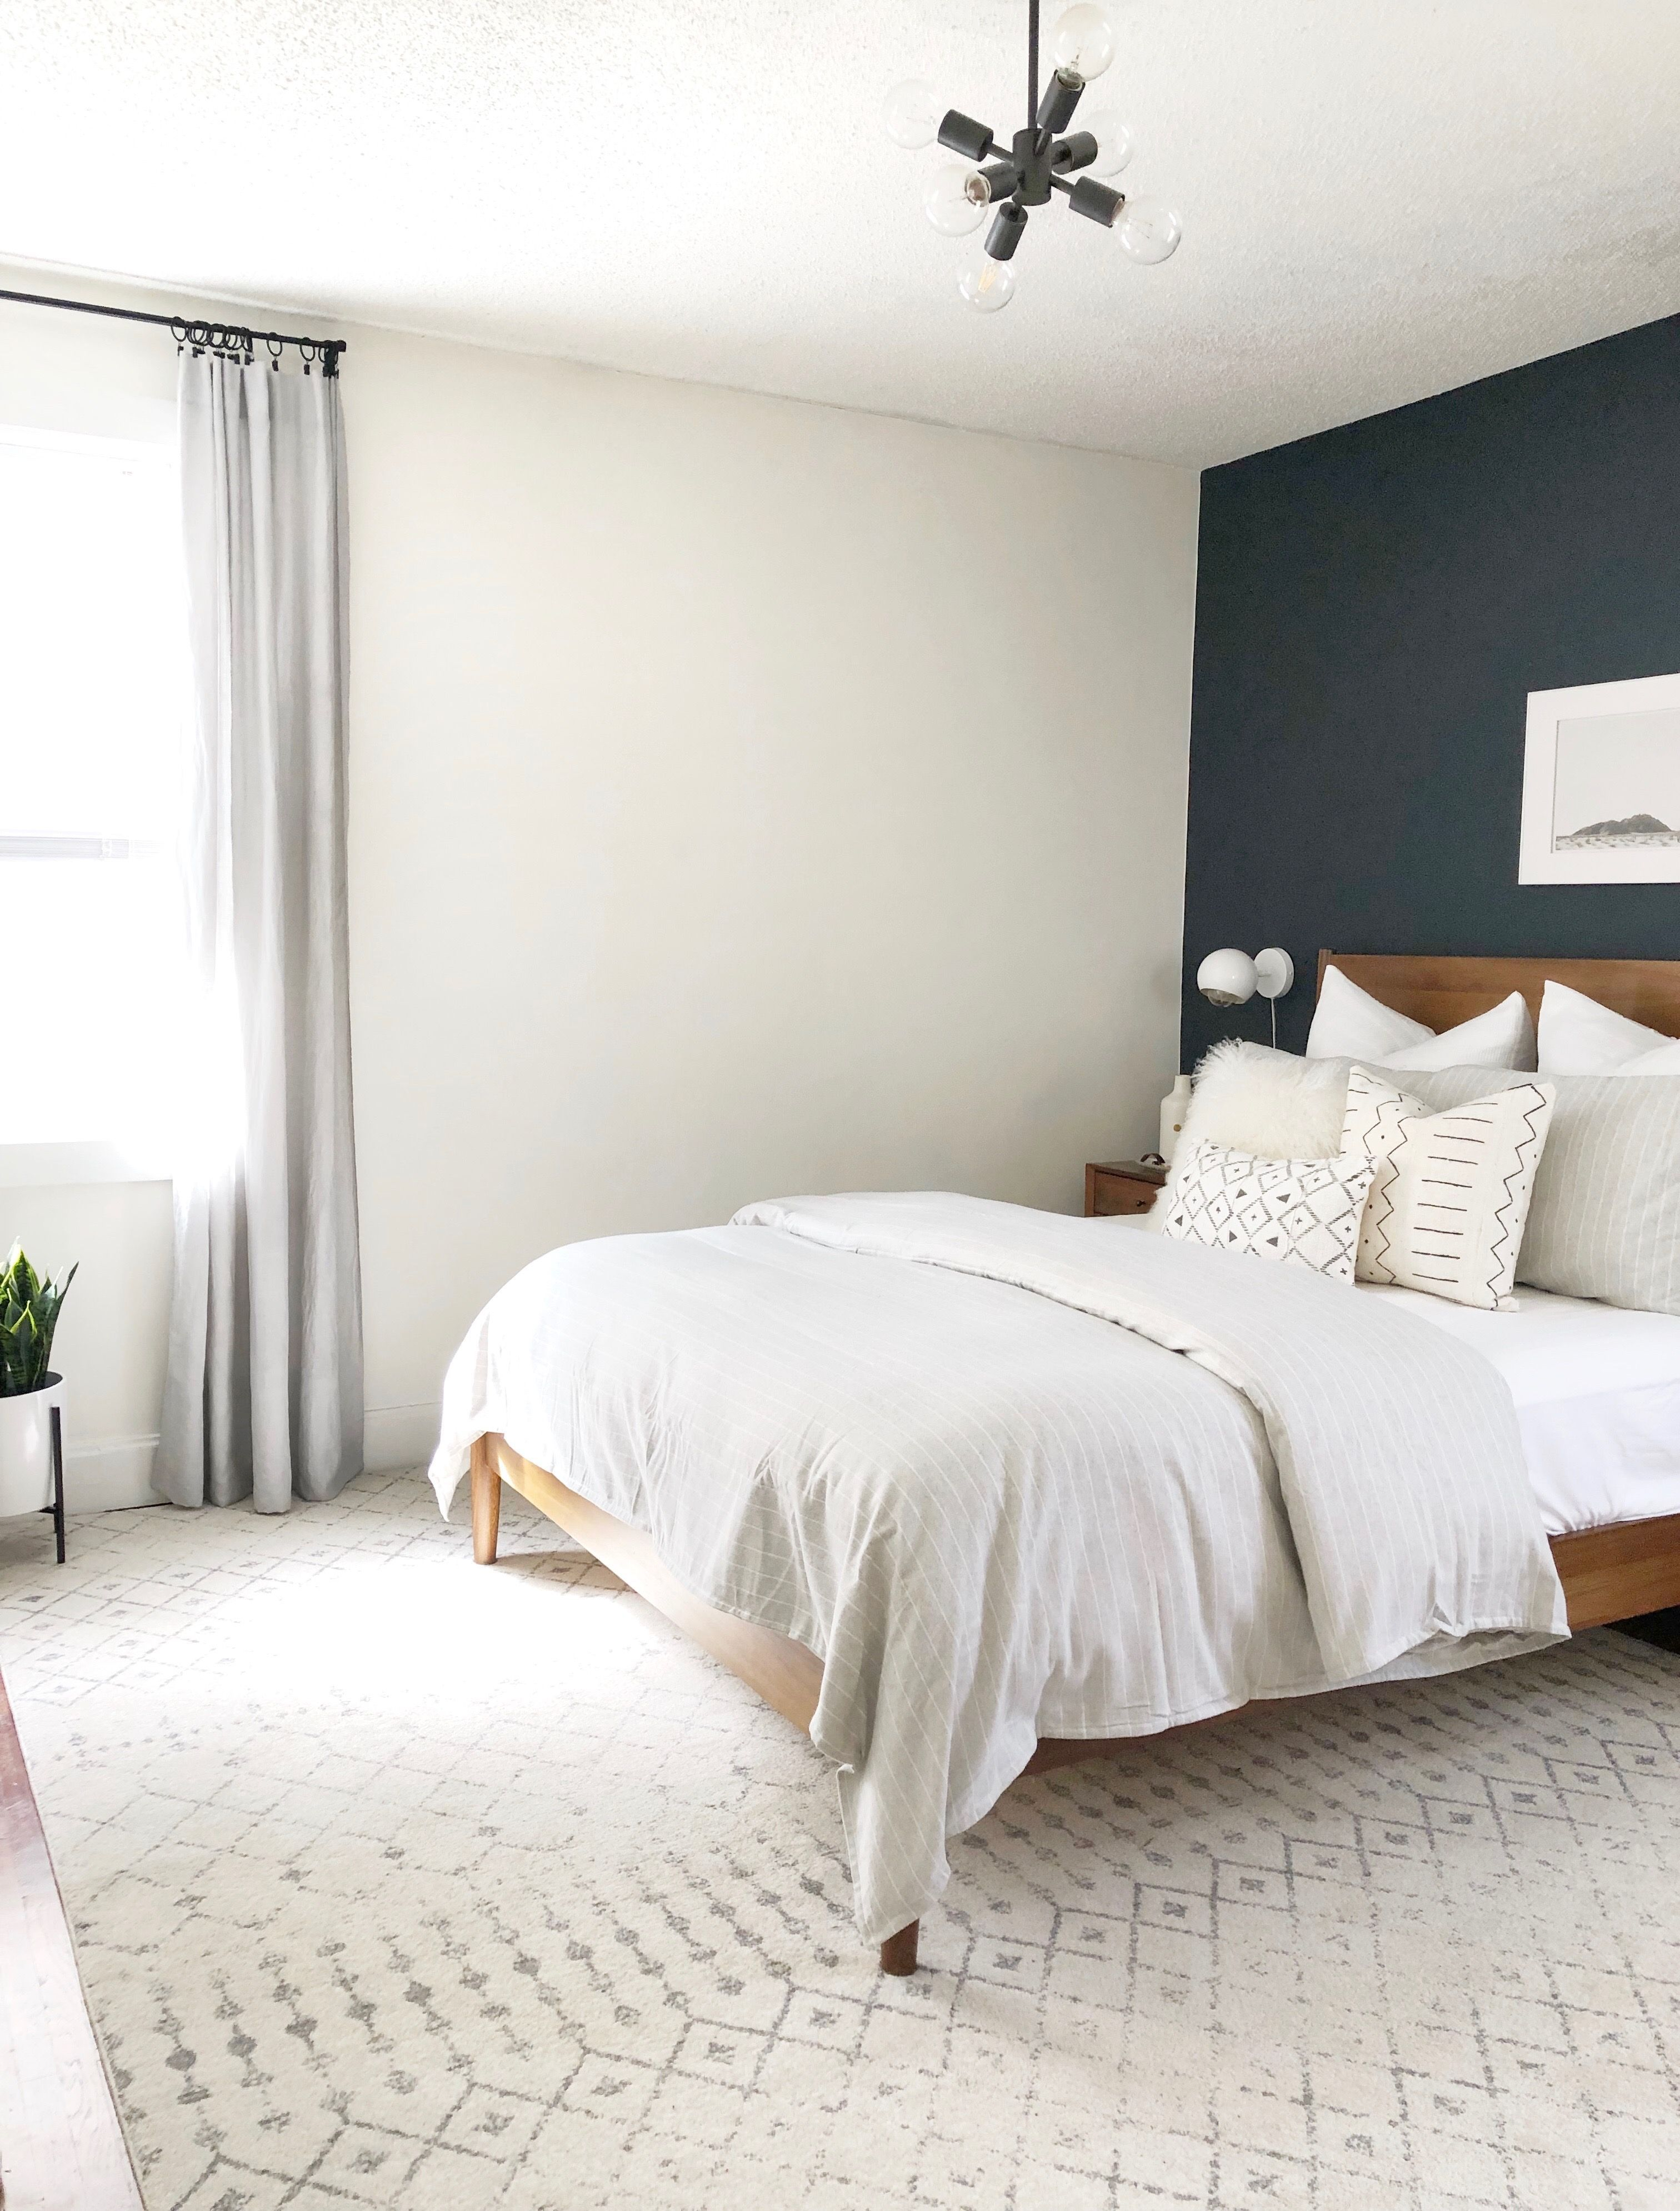 Top 16 Best Accent Wall Ideas For Your Home Bedroom Interior Farmhouse Style Bedroom Decor Bedroom Color Combination